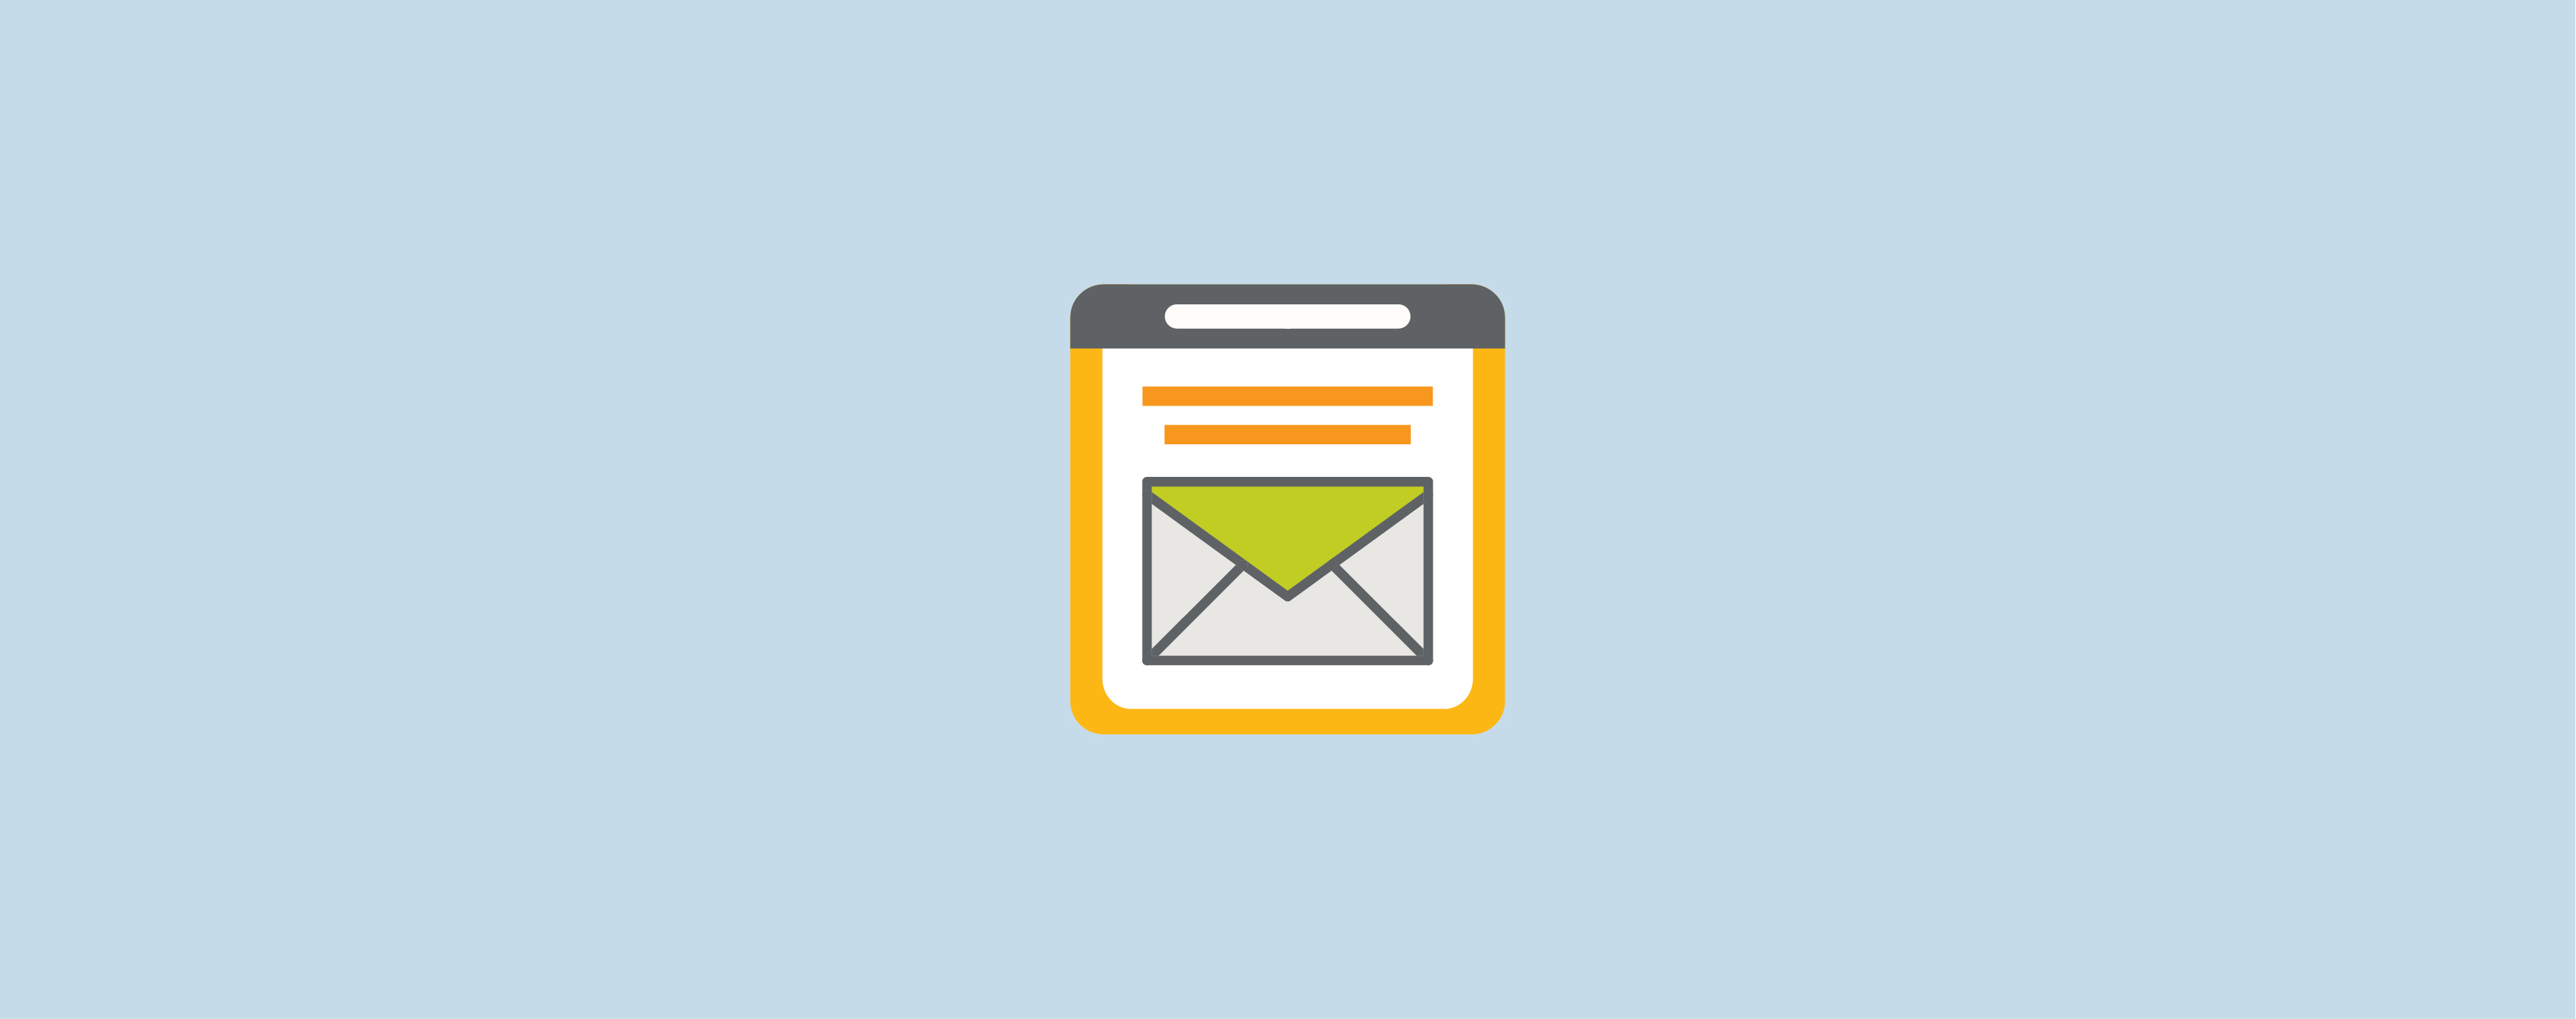 Create a personalized email experience through segmentation